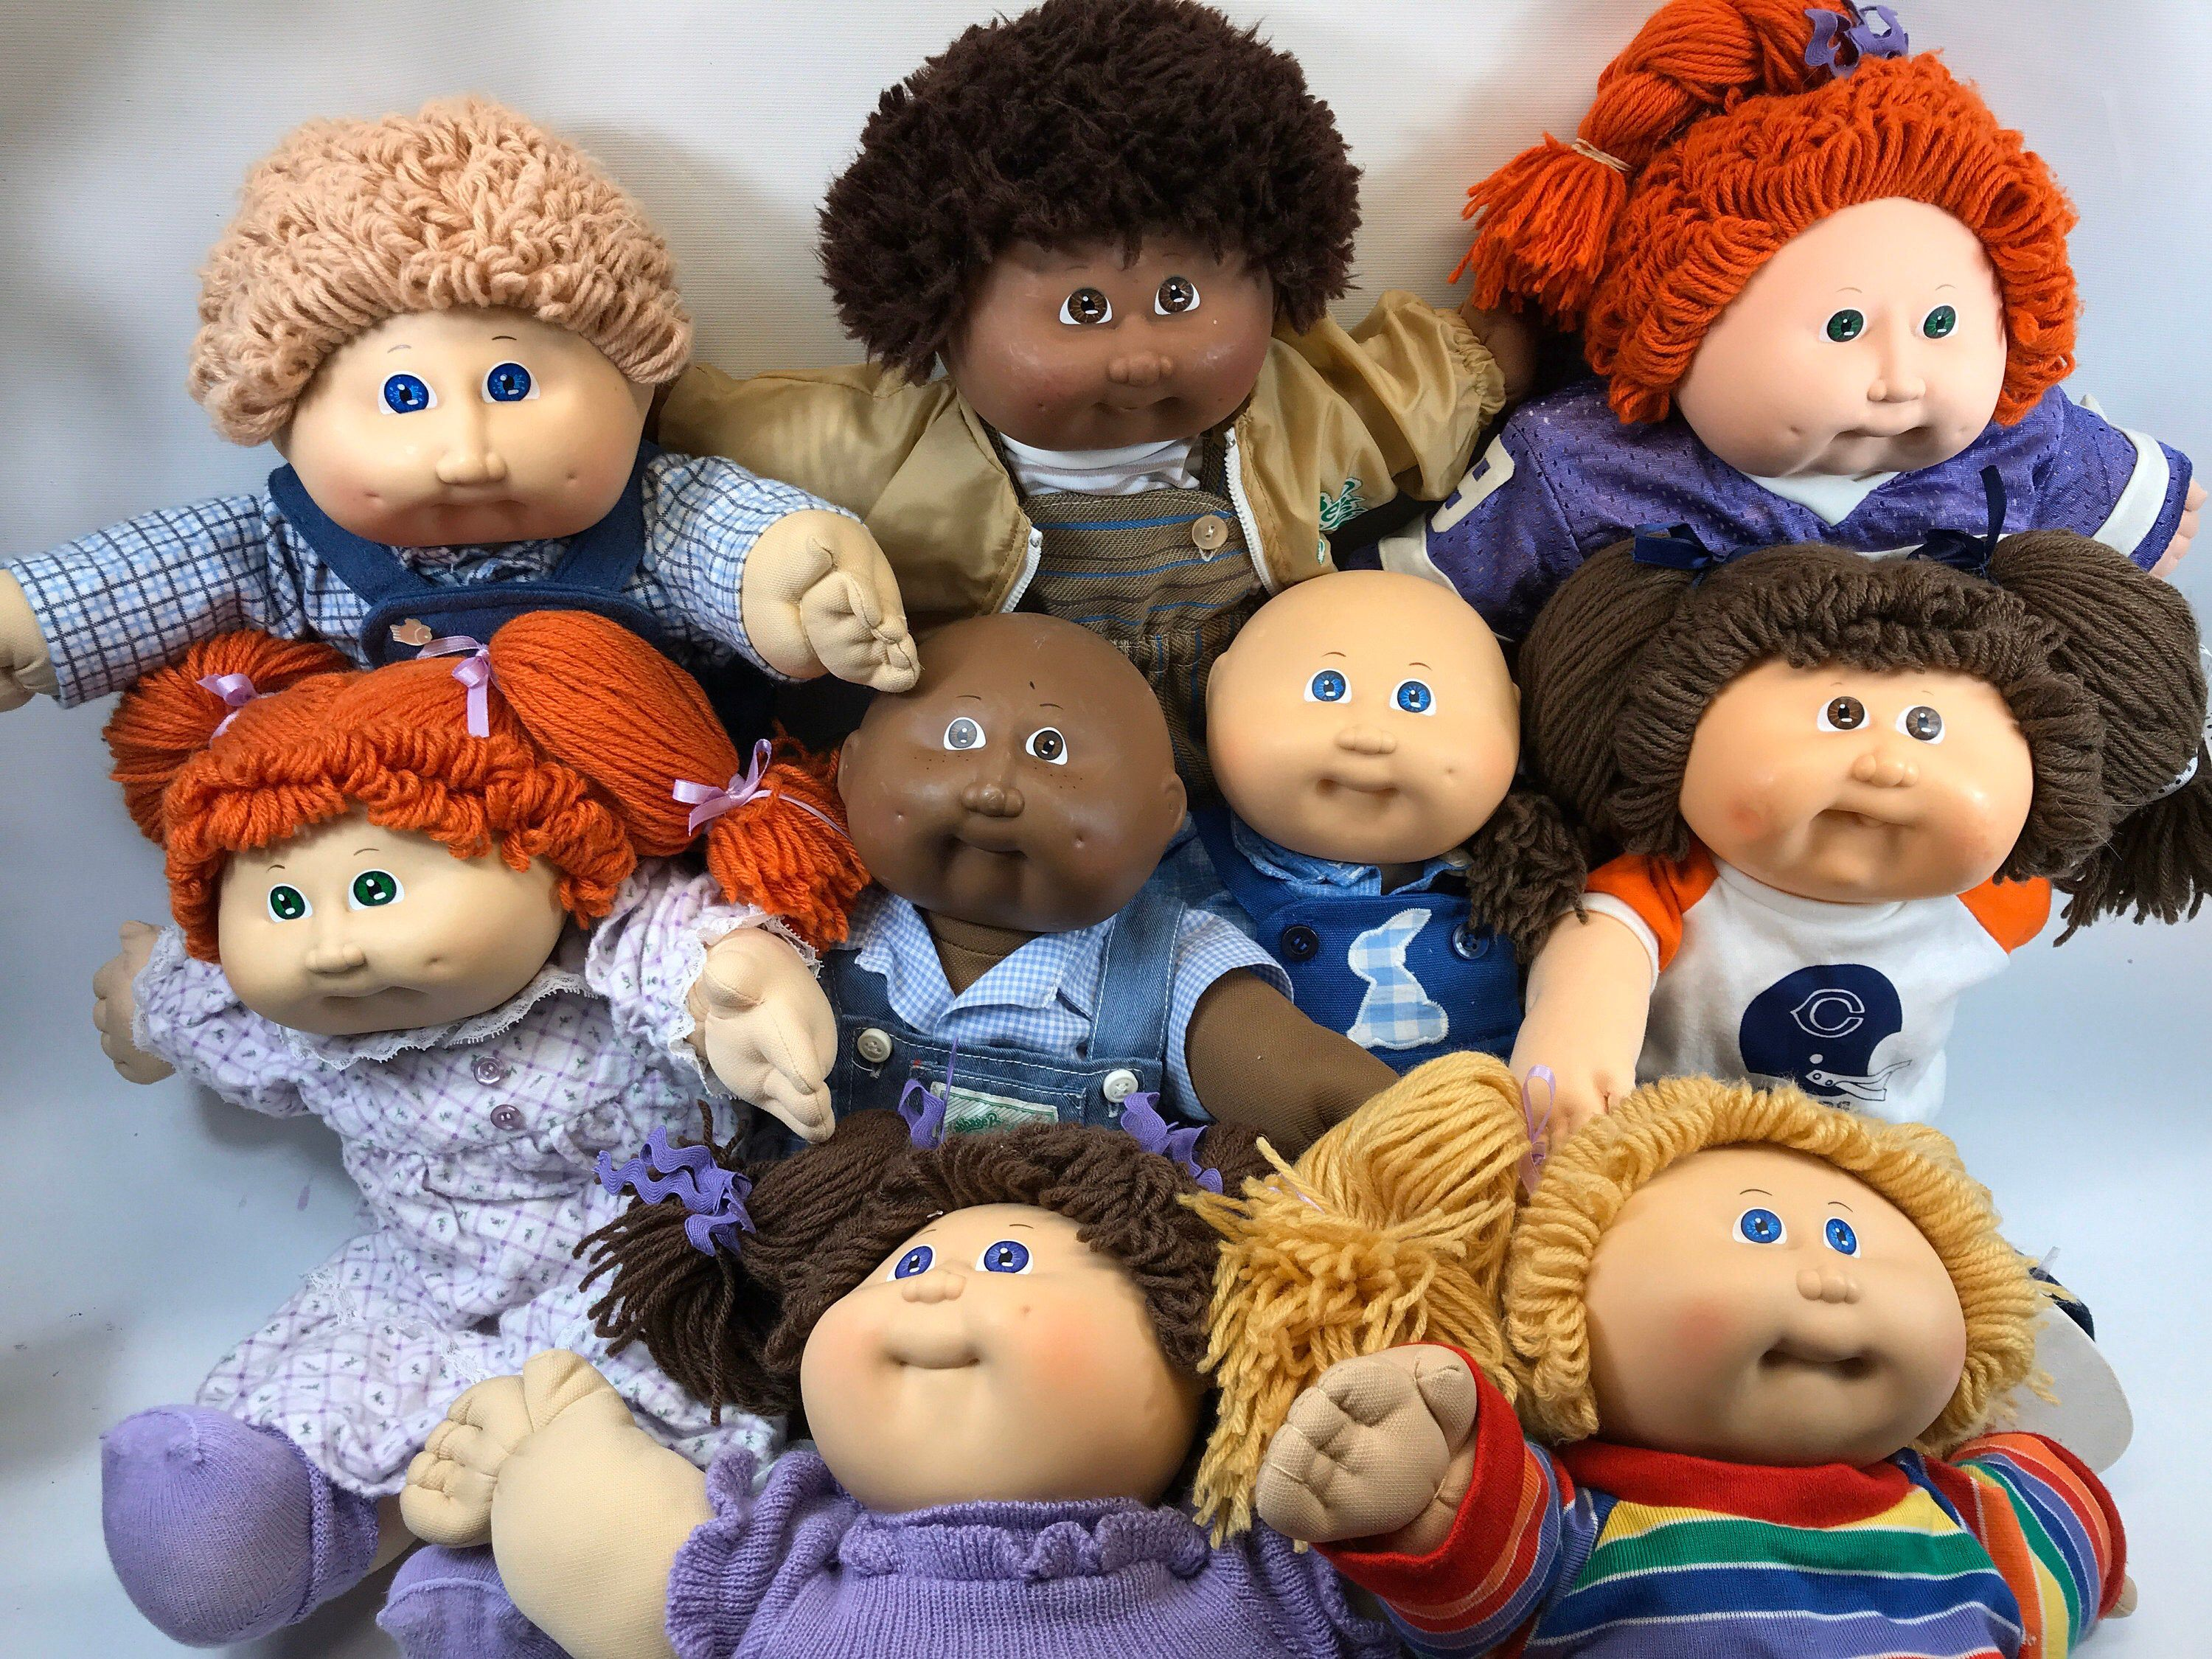 Cabbage Patch Kids Preemies Free Shipping Vintage Baby Etsy Cabbage Patch Babies Vintage Baby Toys Cabbage Patch Dolls